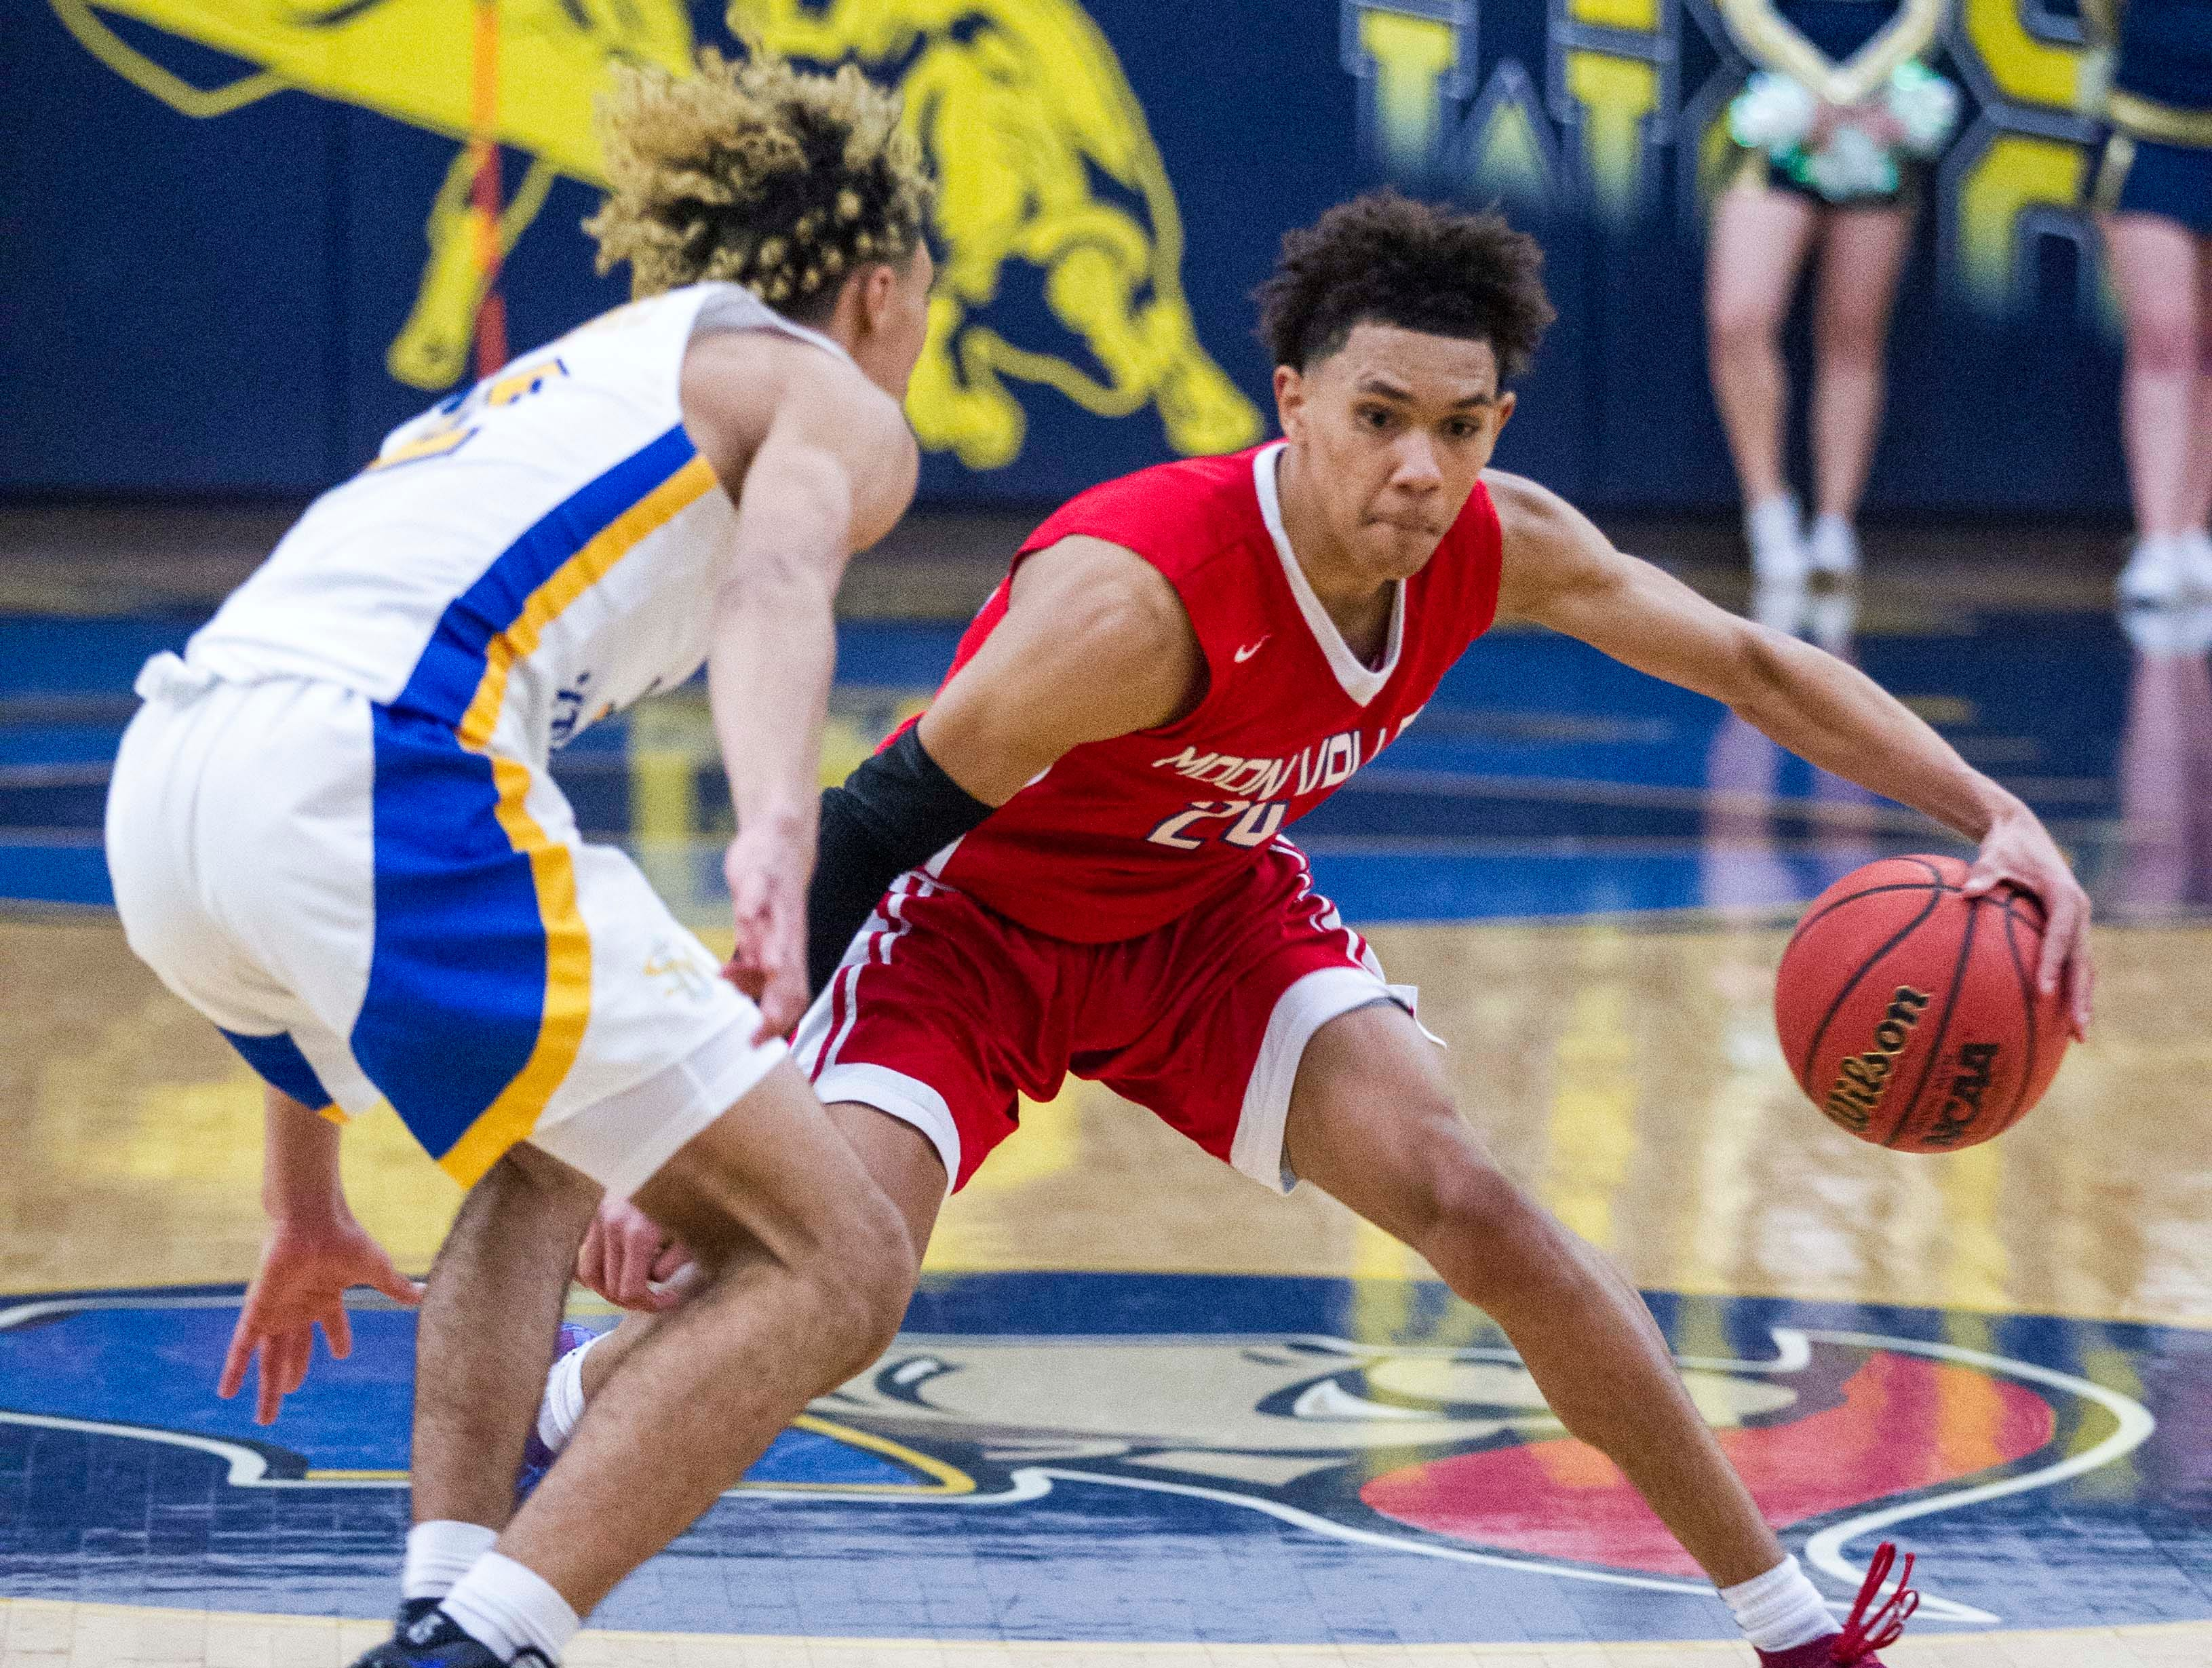 Moon Valley's John Mcknight (20) dribbles against Shadow Mountain's Jaelen House (2) during the first half of their game in Phoenix, Tuesday, Feb .12,  2019.